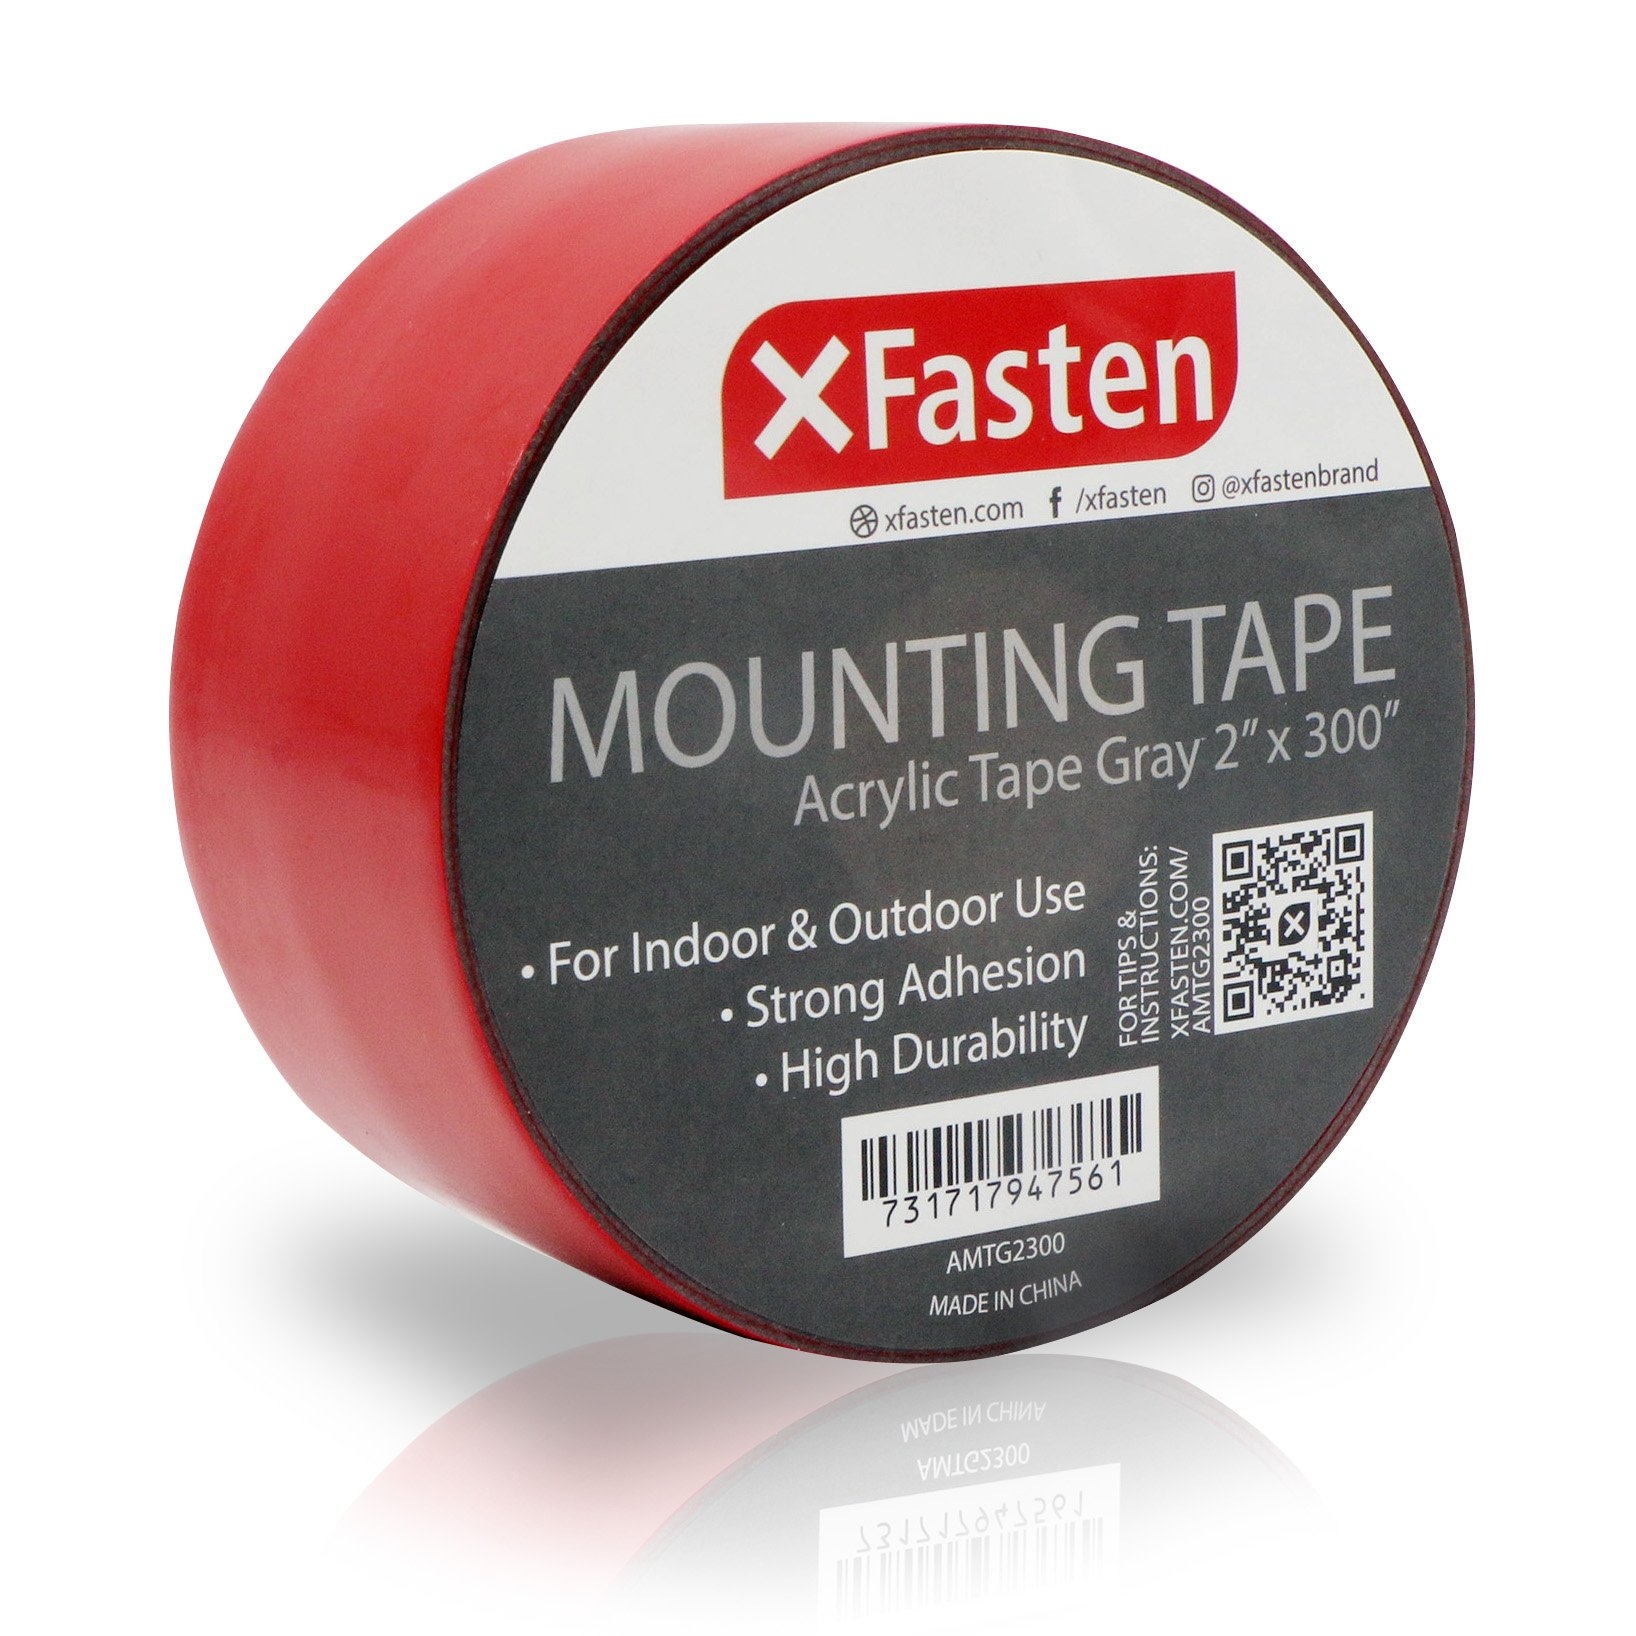 XFasten Extreme Double-Sided Acrylic Mounting Tape Removable, Gray, 2-inch x 300-Inch, Waterproof Indoor and Exterior Double Sides Brick Mounting Tape by XFasten